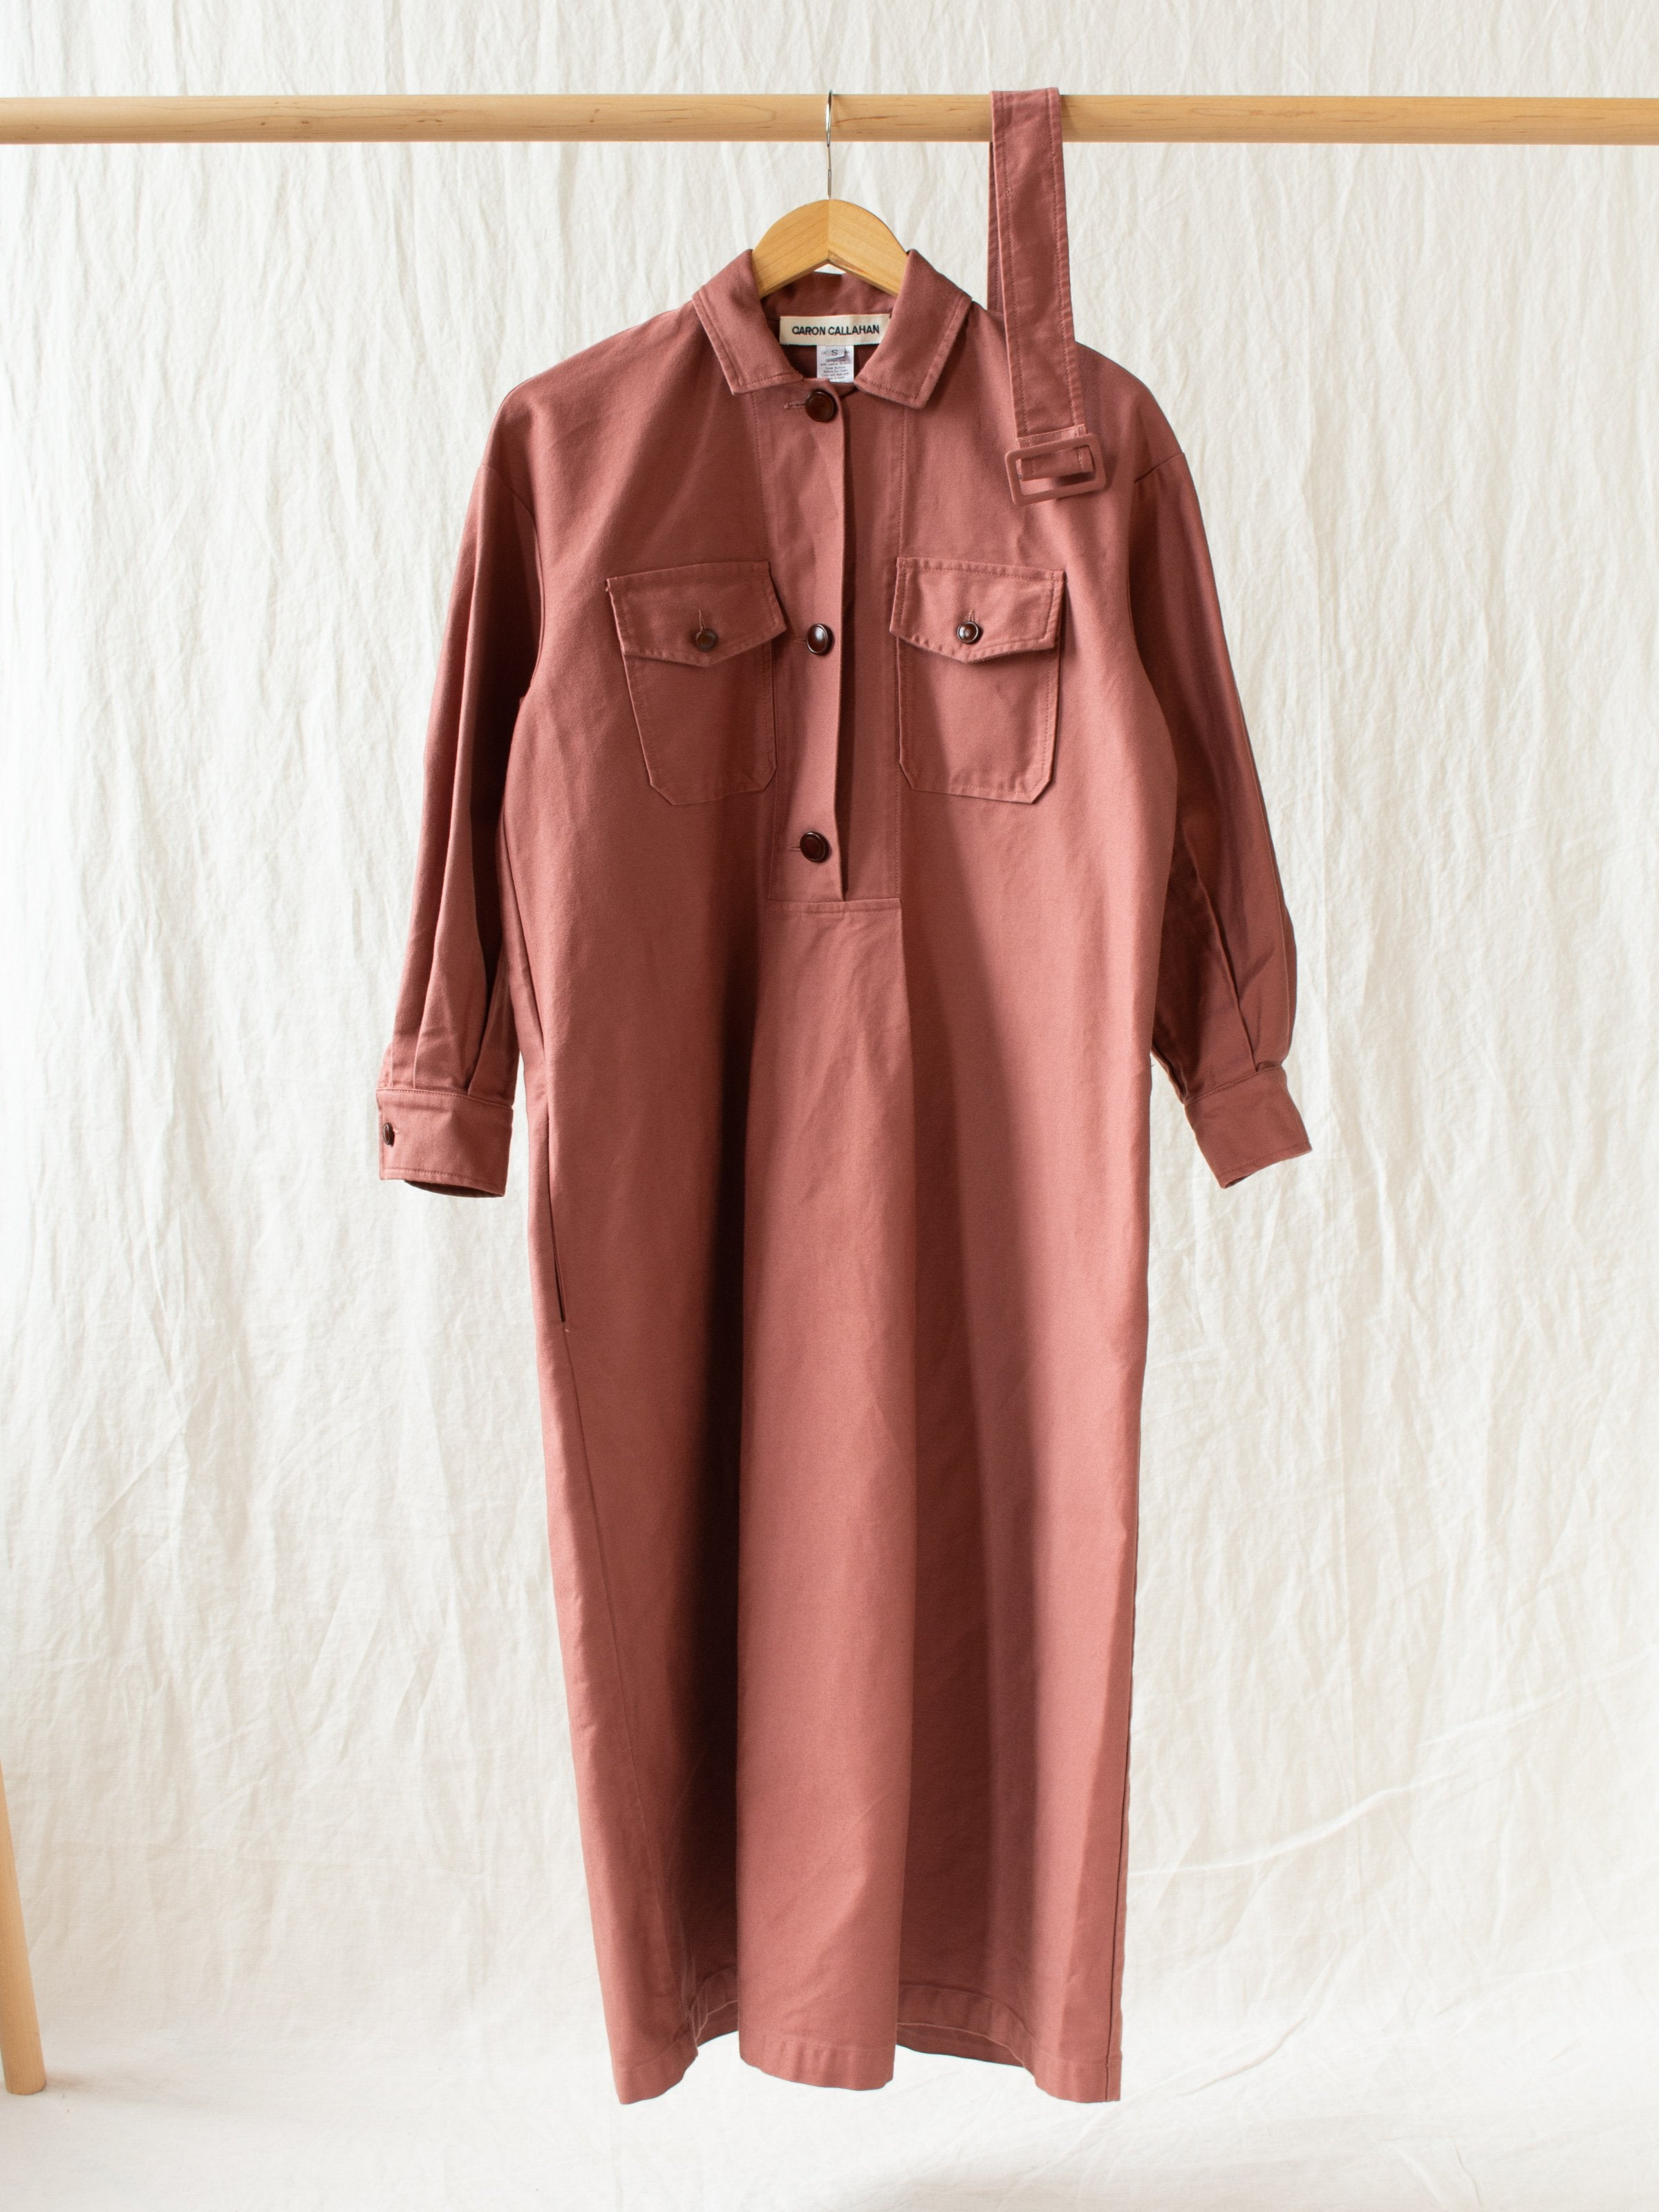 Namu Shop - Caron Callahan Jasper Tunic Dress - Rose Cotton Twill